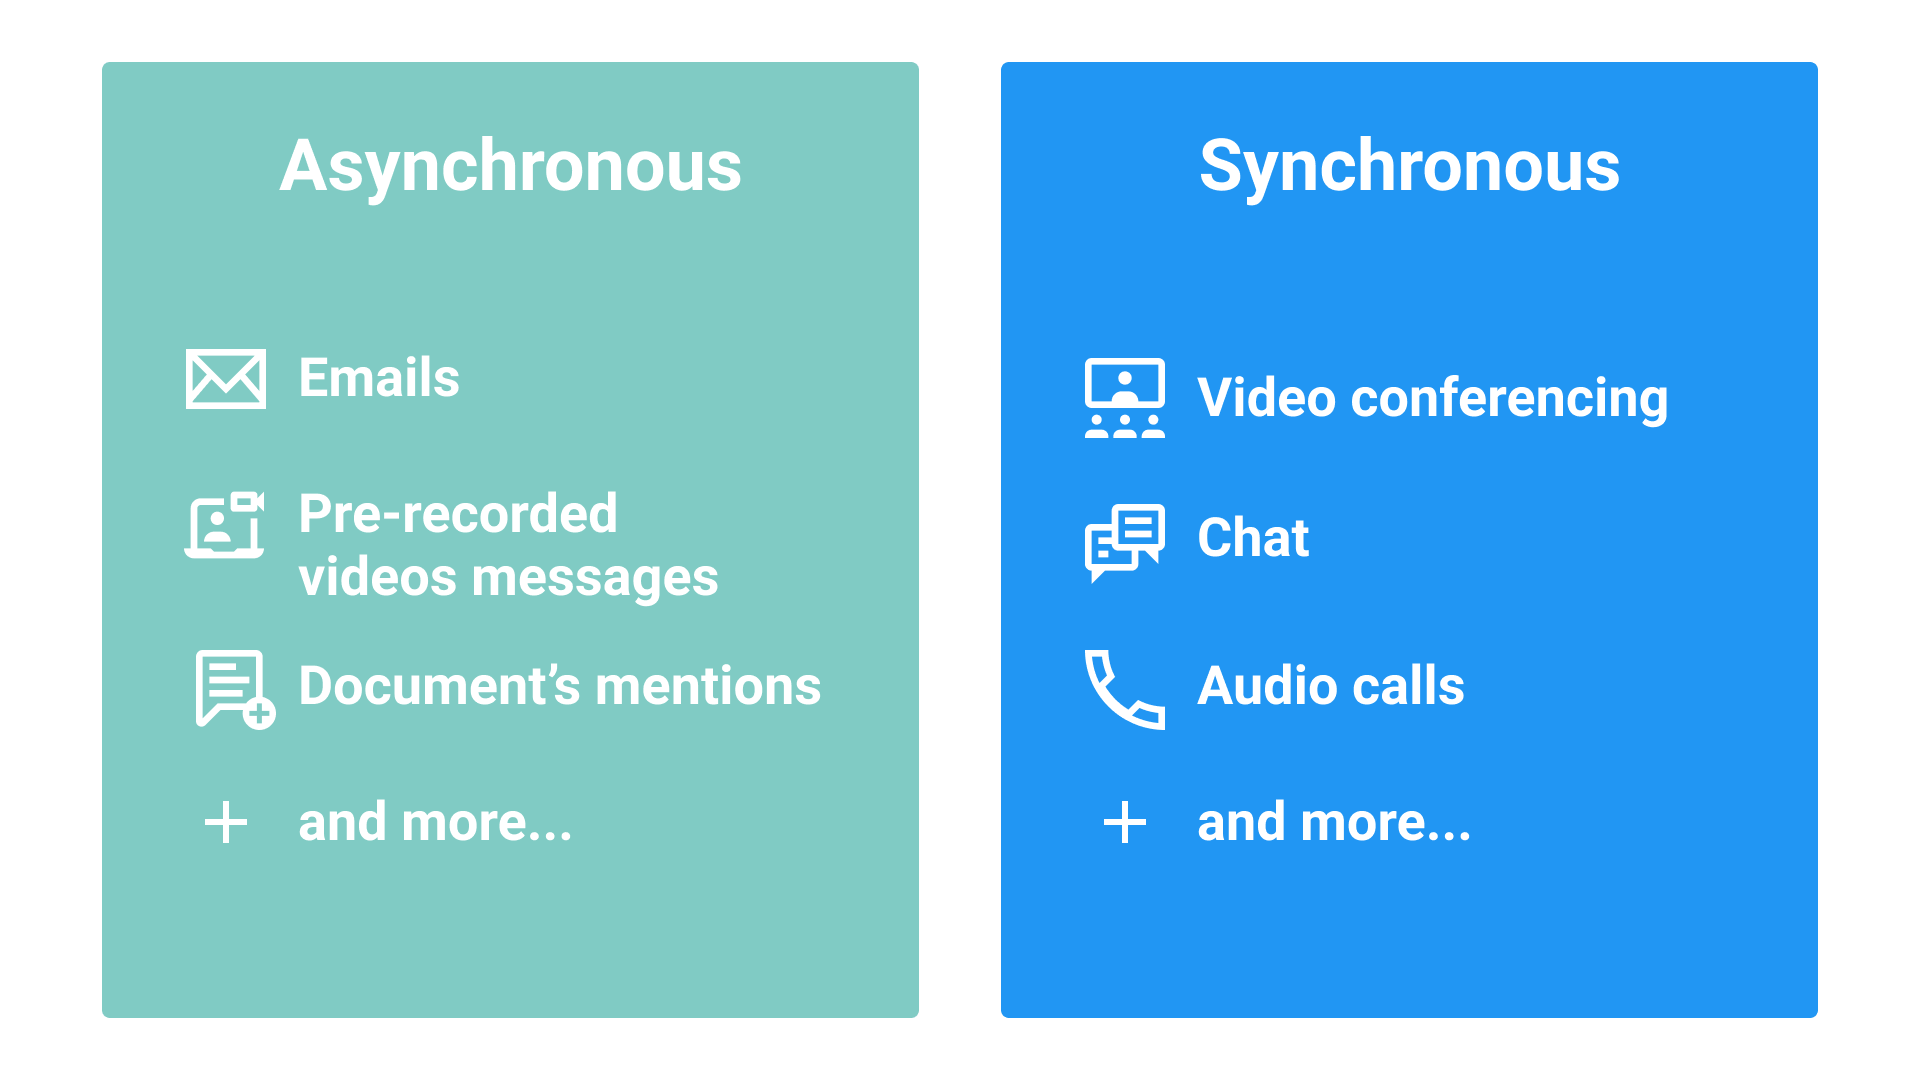 Asynchronous and synchronous communication examples